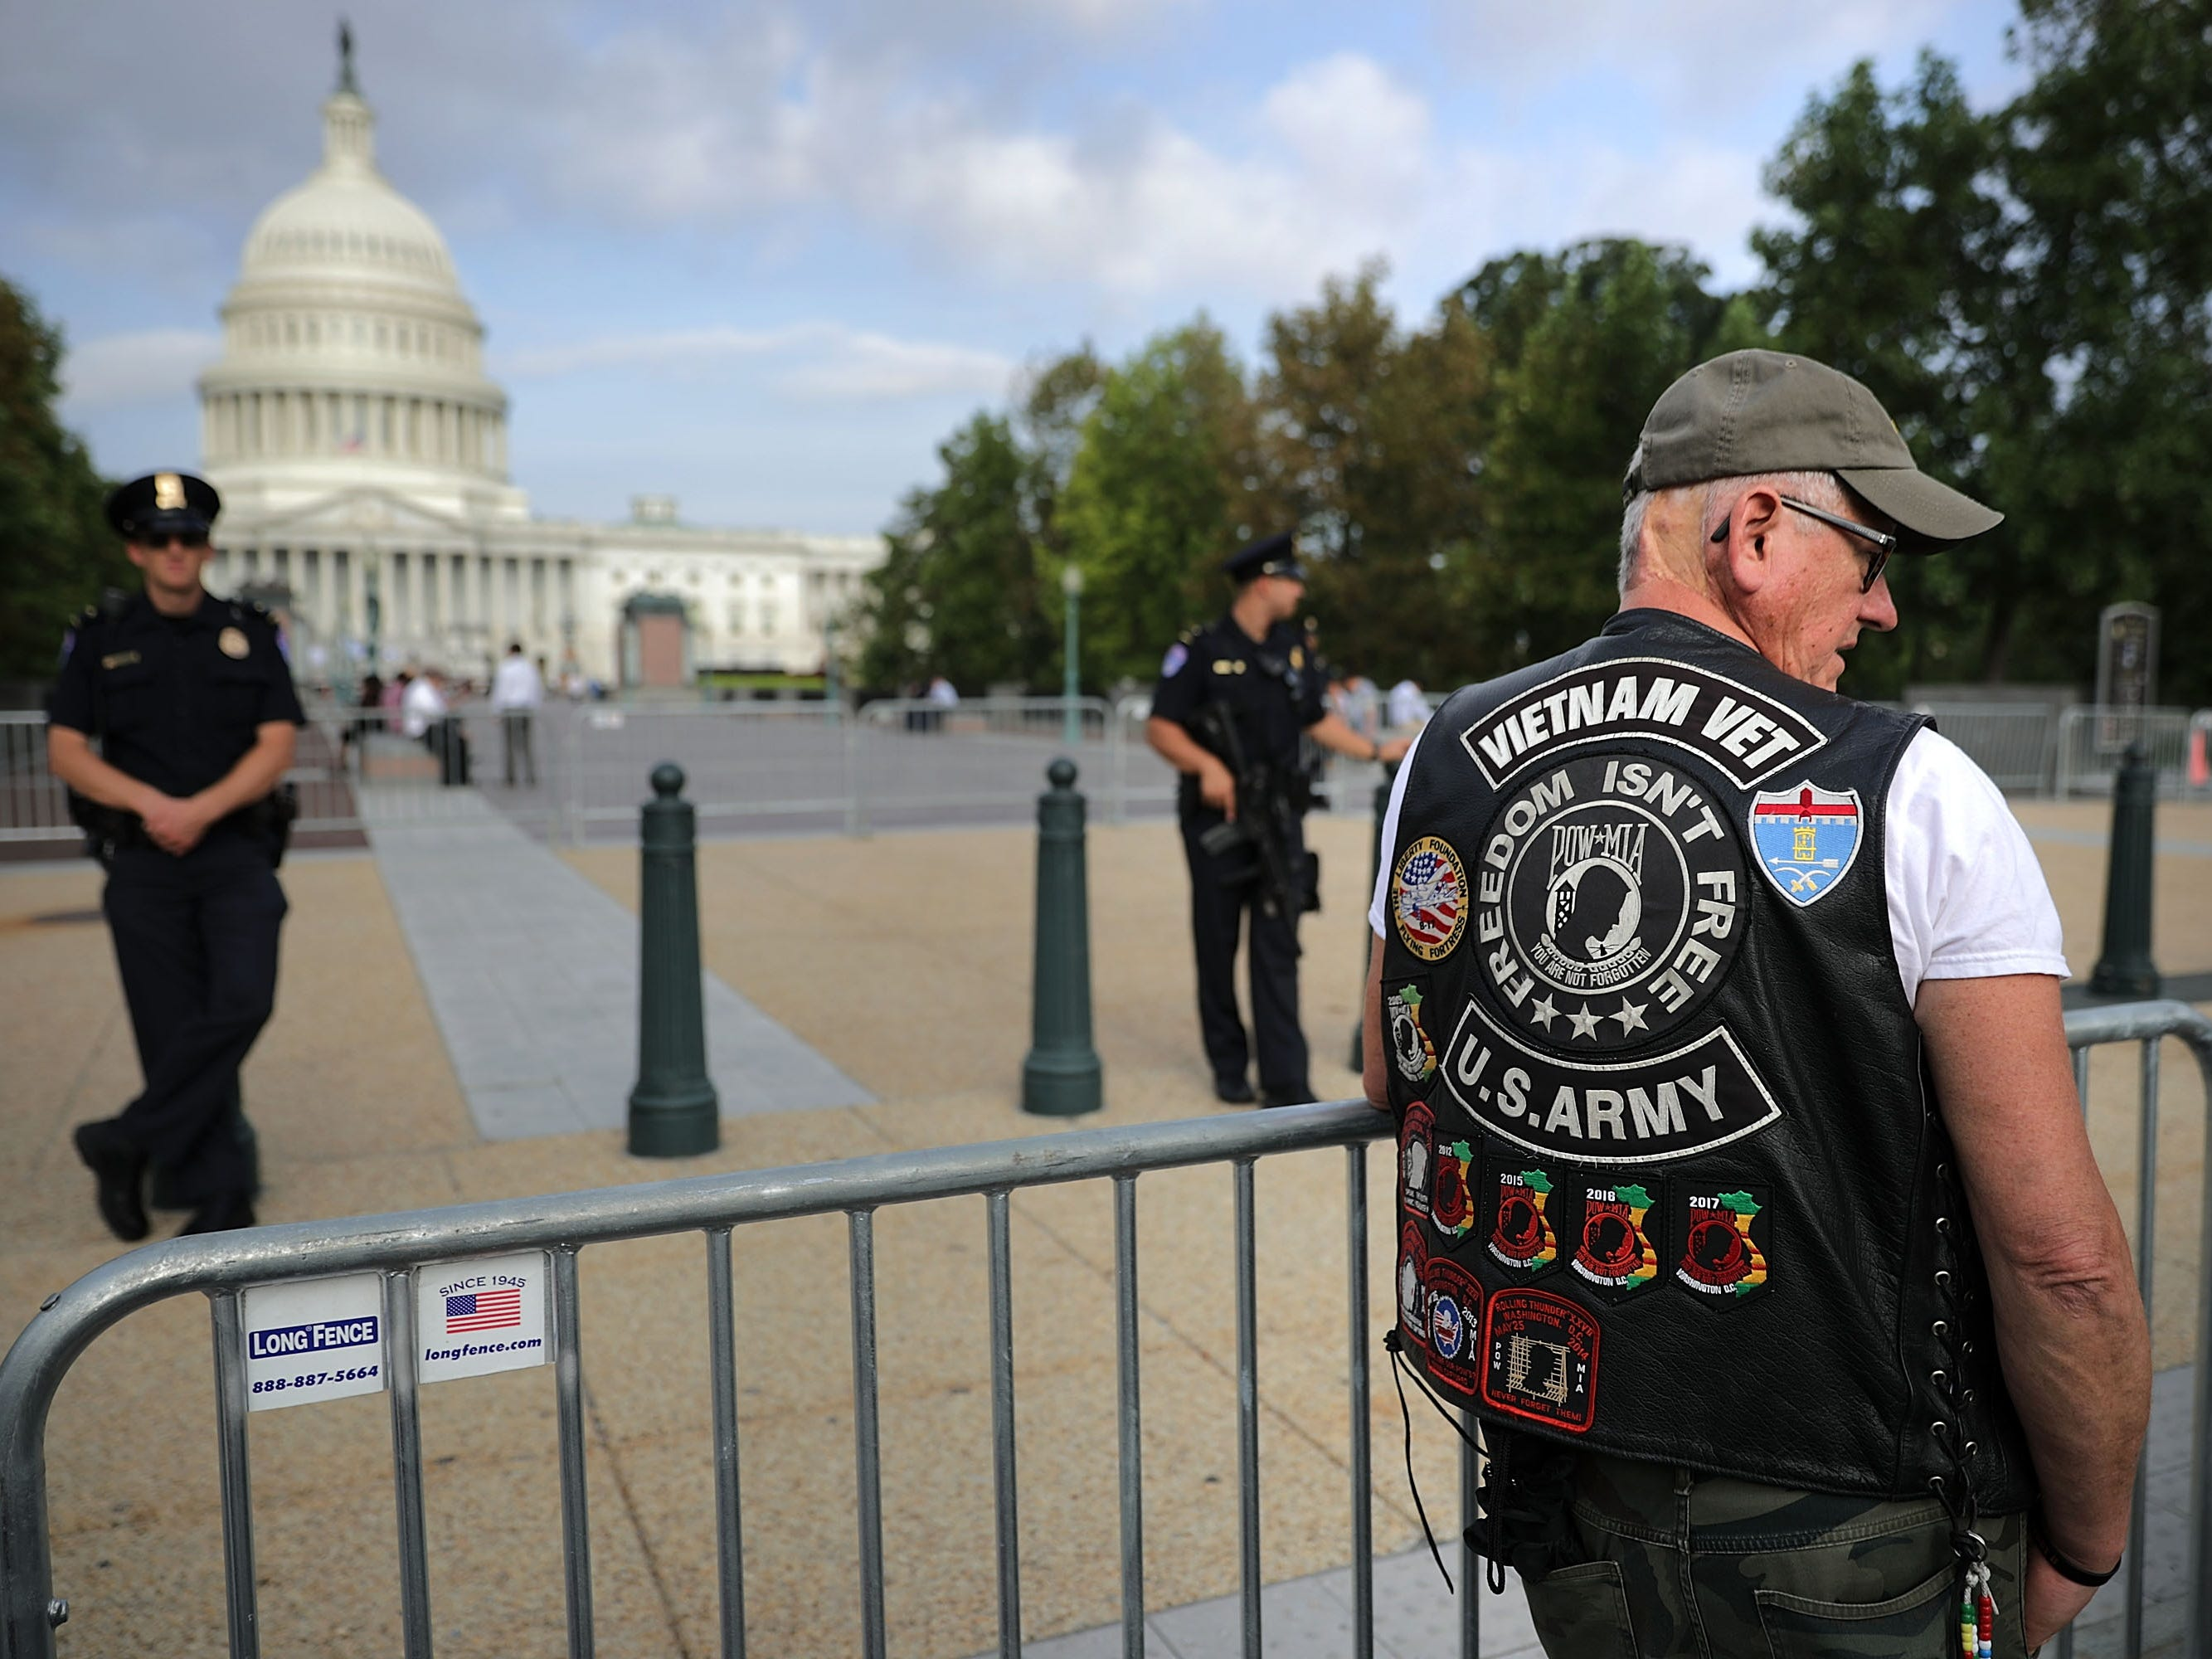 "WASHINGTON, DC - AUGUST 31:  Vietnam War veteran Gary Galloway of Fort Knox, Kentucky, stands in line to pay respects to Sen. John McCain (R-AZ) when he lies in state later in the dat at the U.S. Capitol August 31, 2018 in Washington, DC. ""We were brothers,"" Galloway said of McCain. ""All military people are brothers when it comes down to it."" The late senator died August 25 at the age of 81 after a long battle with brain cancer. He will lie in state at the U.S. Capitol Friday, a rare honor bestowed on only 31 people in the past 166 years. Sen. McCain will be buried at his final resting place at the U.S. Naval Academy on Sunday.  (Photo by Chip Somodevilla/Getty Images) ORG XMIT: 775217654 ORIG FILE ID: 1025510204"